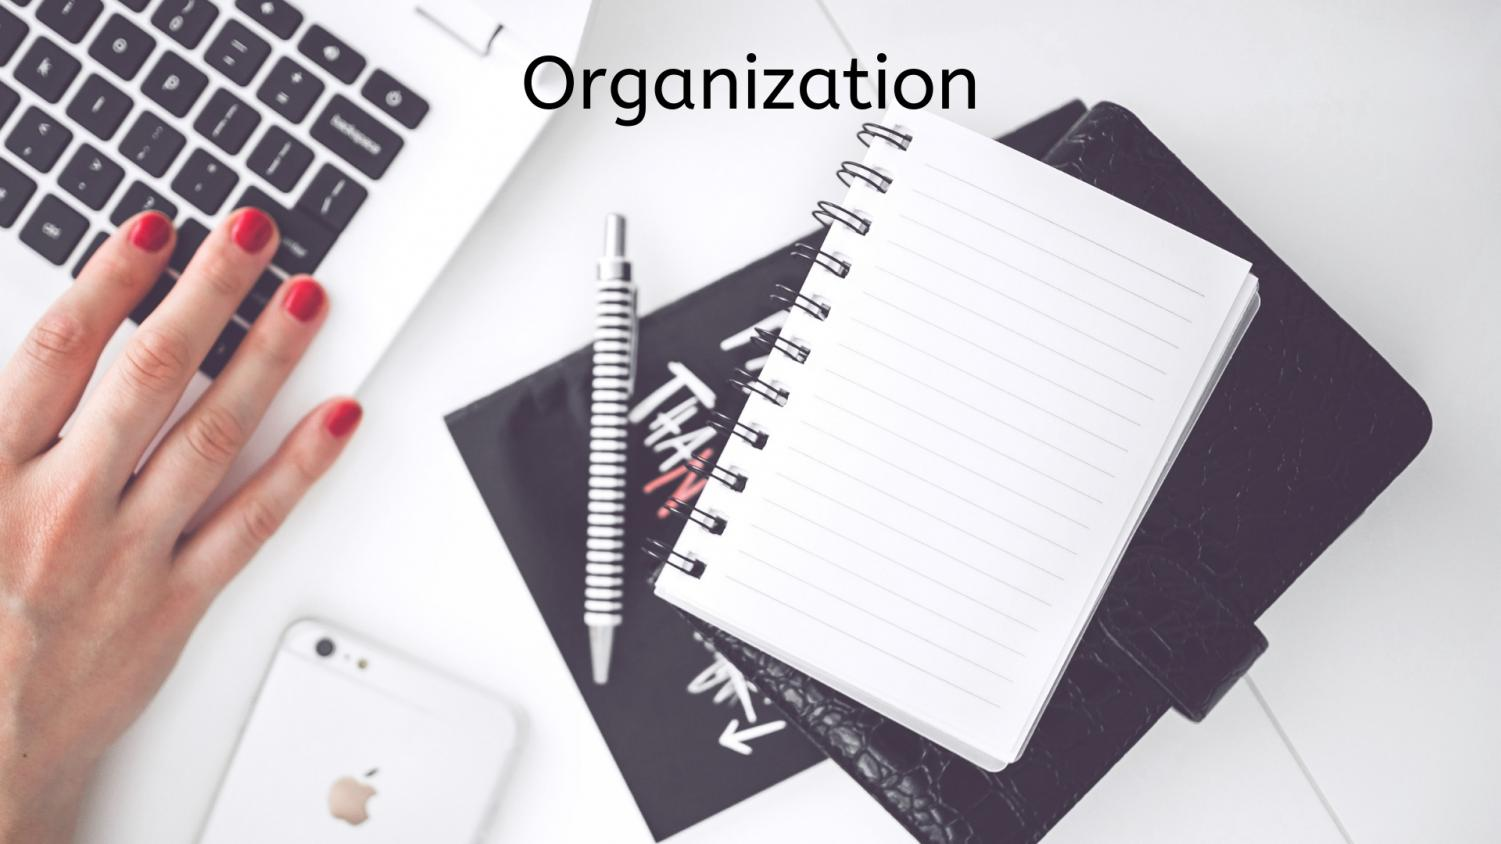 Stay+organized+-+Starting+the+new+year+off+with+an+organized+room+or+backpack+could+make+all+the+difference.+Research+shows+a+clean+space+corresponds+to+a+clean+mind.+